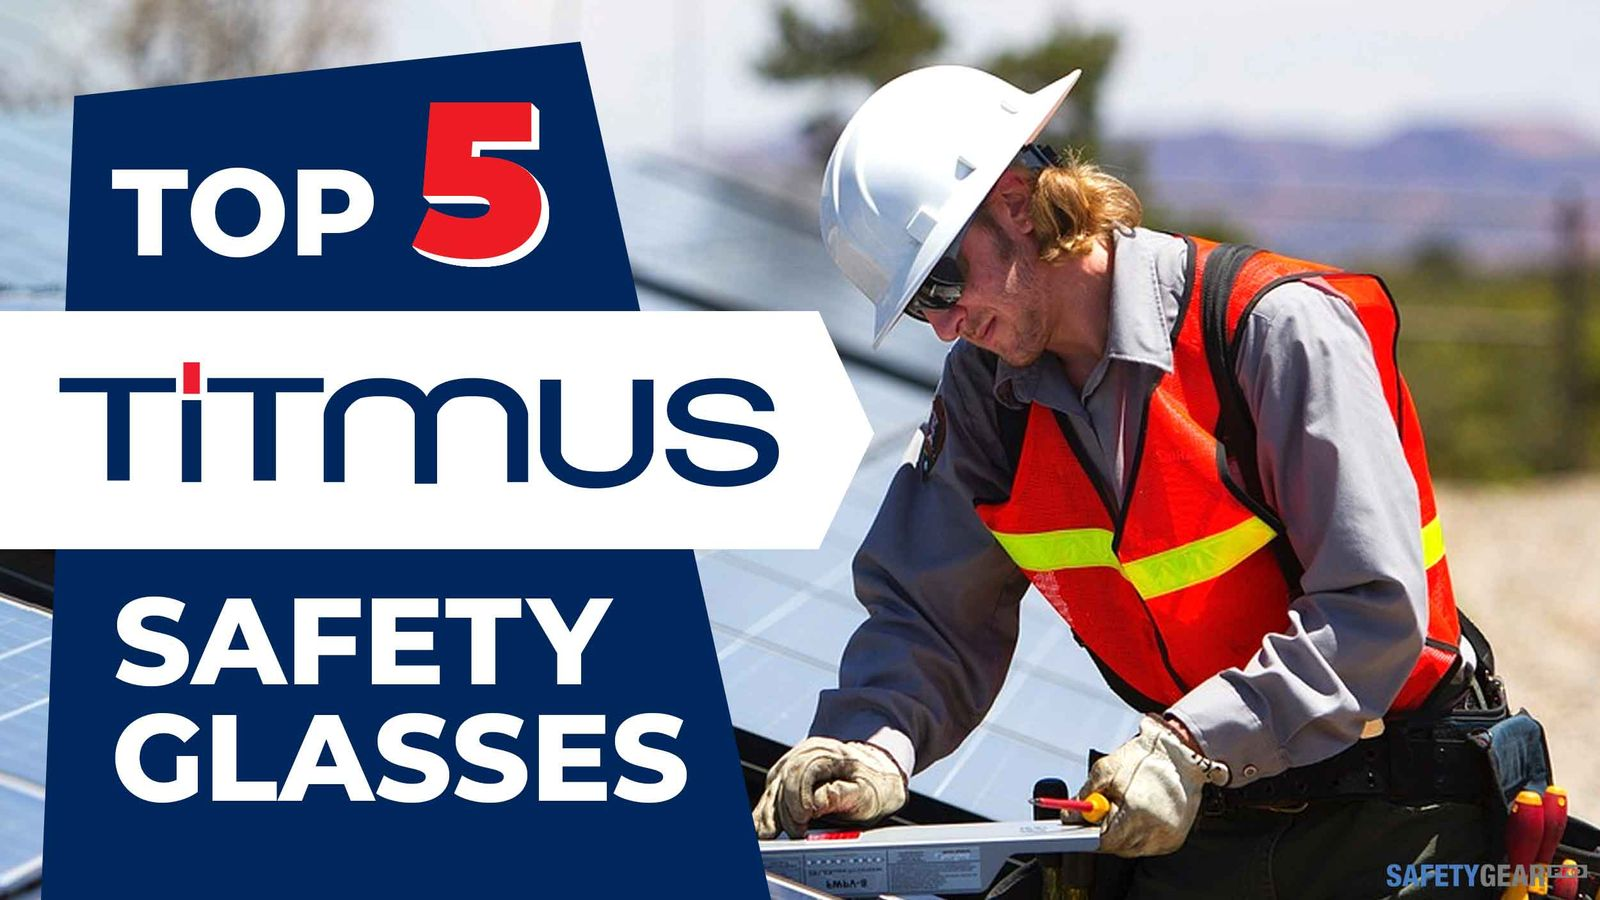 Titmus Safety Glasses Header